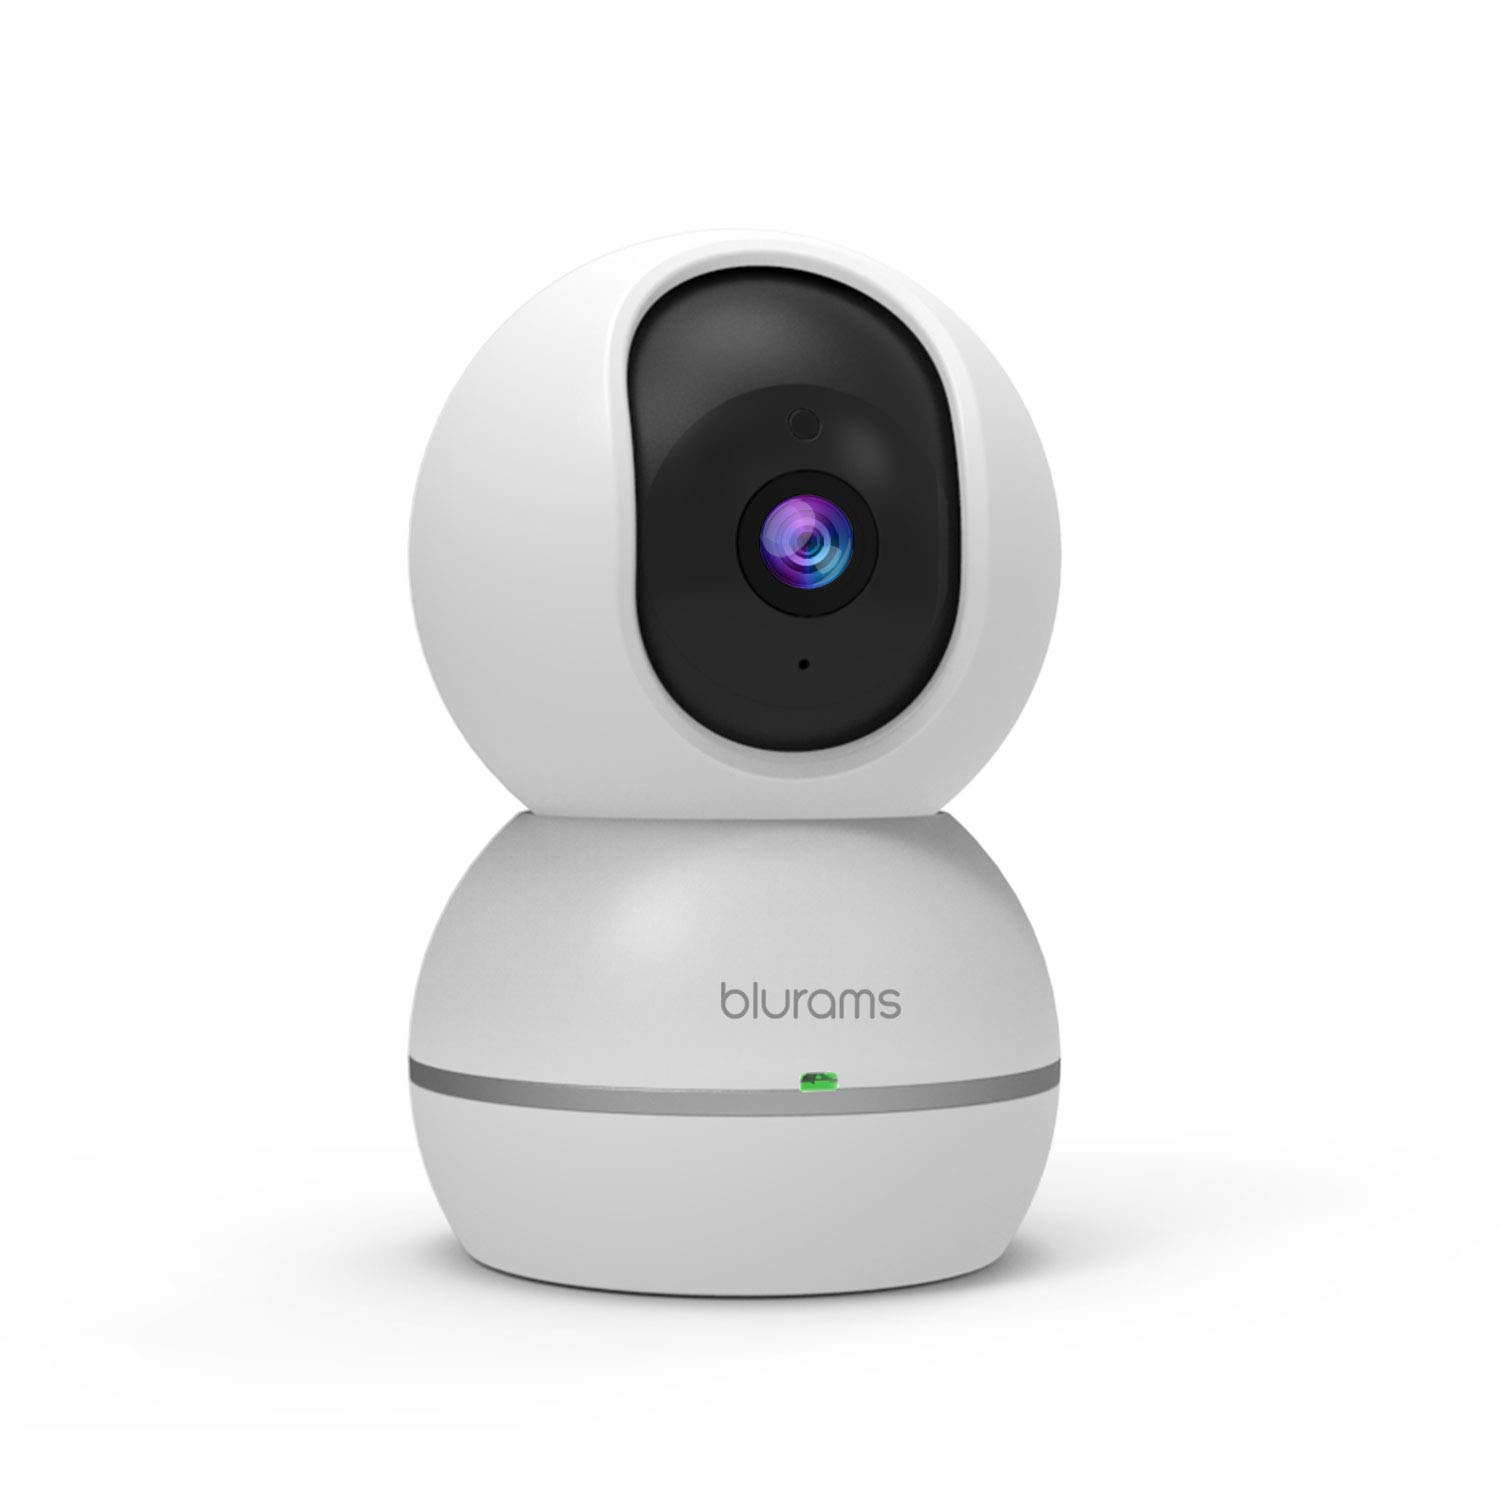 blurams 1080p Dome Security Camera | PTZ Surveillance System with Motion/Sound Detection, Smart AI Alerts, Privacy Mode, Night Vision, Two-Way Audio | Cloud/Local Storage Available | Works with Alexa by Blurams